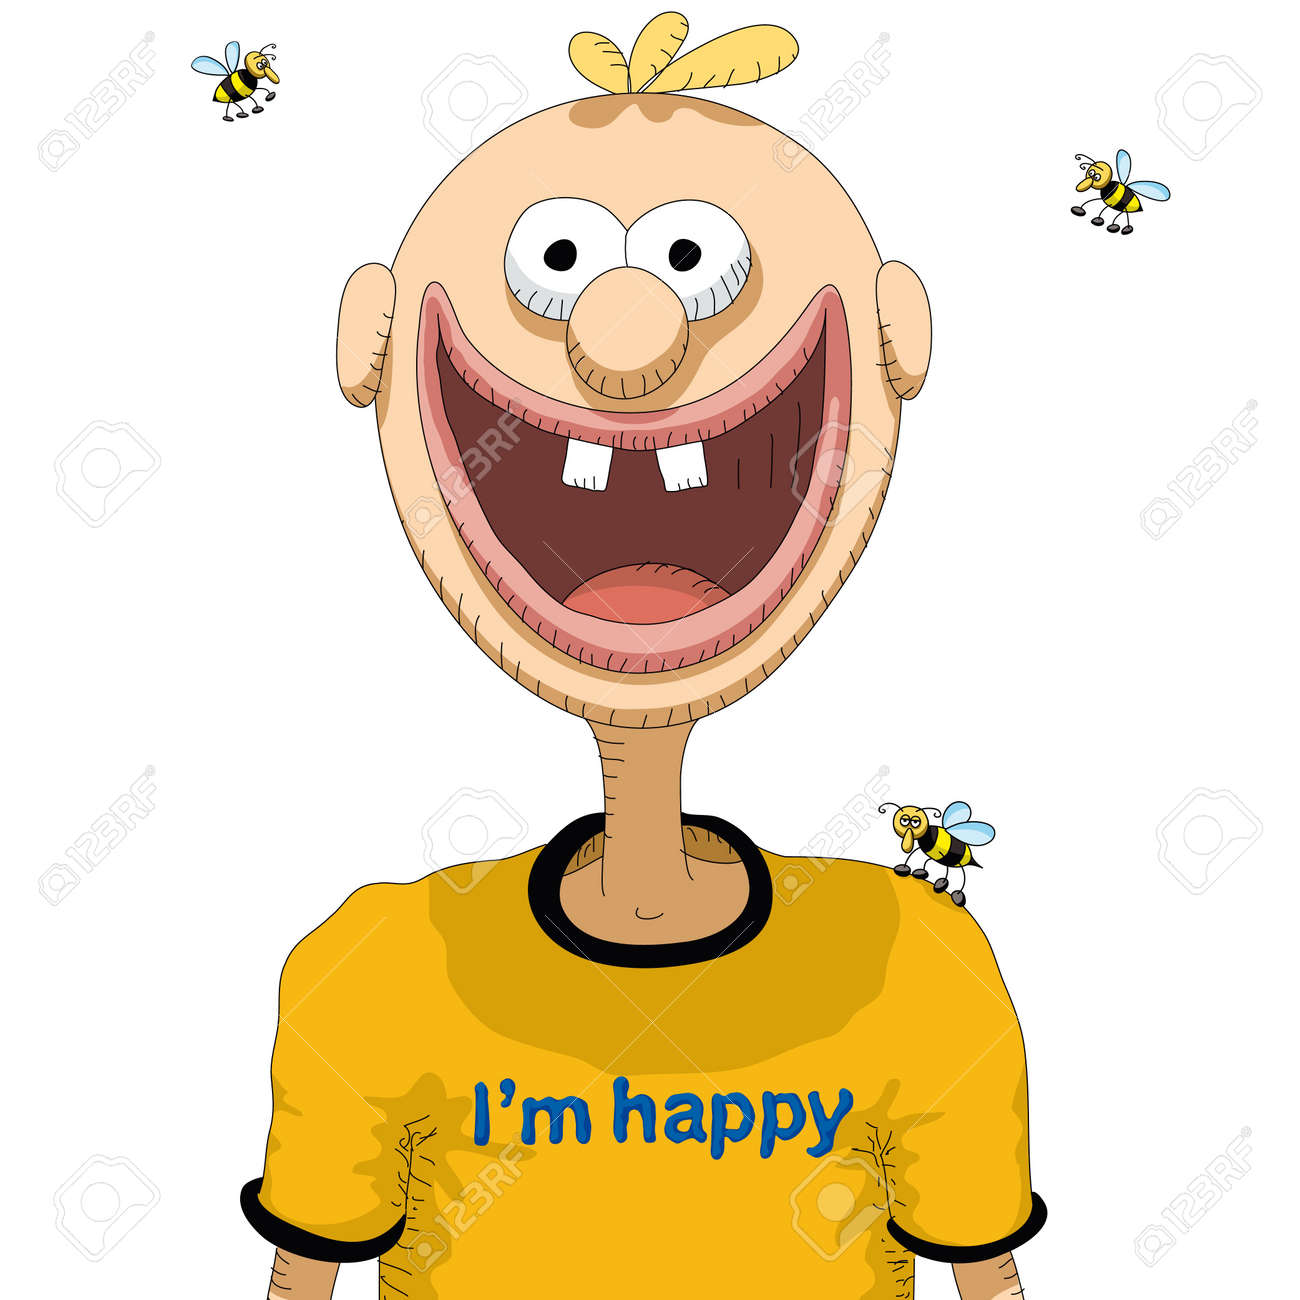 Image result for happy cartoon person